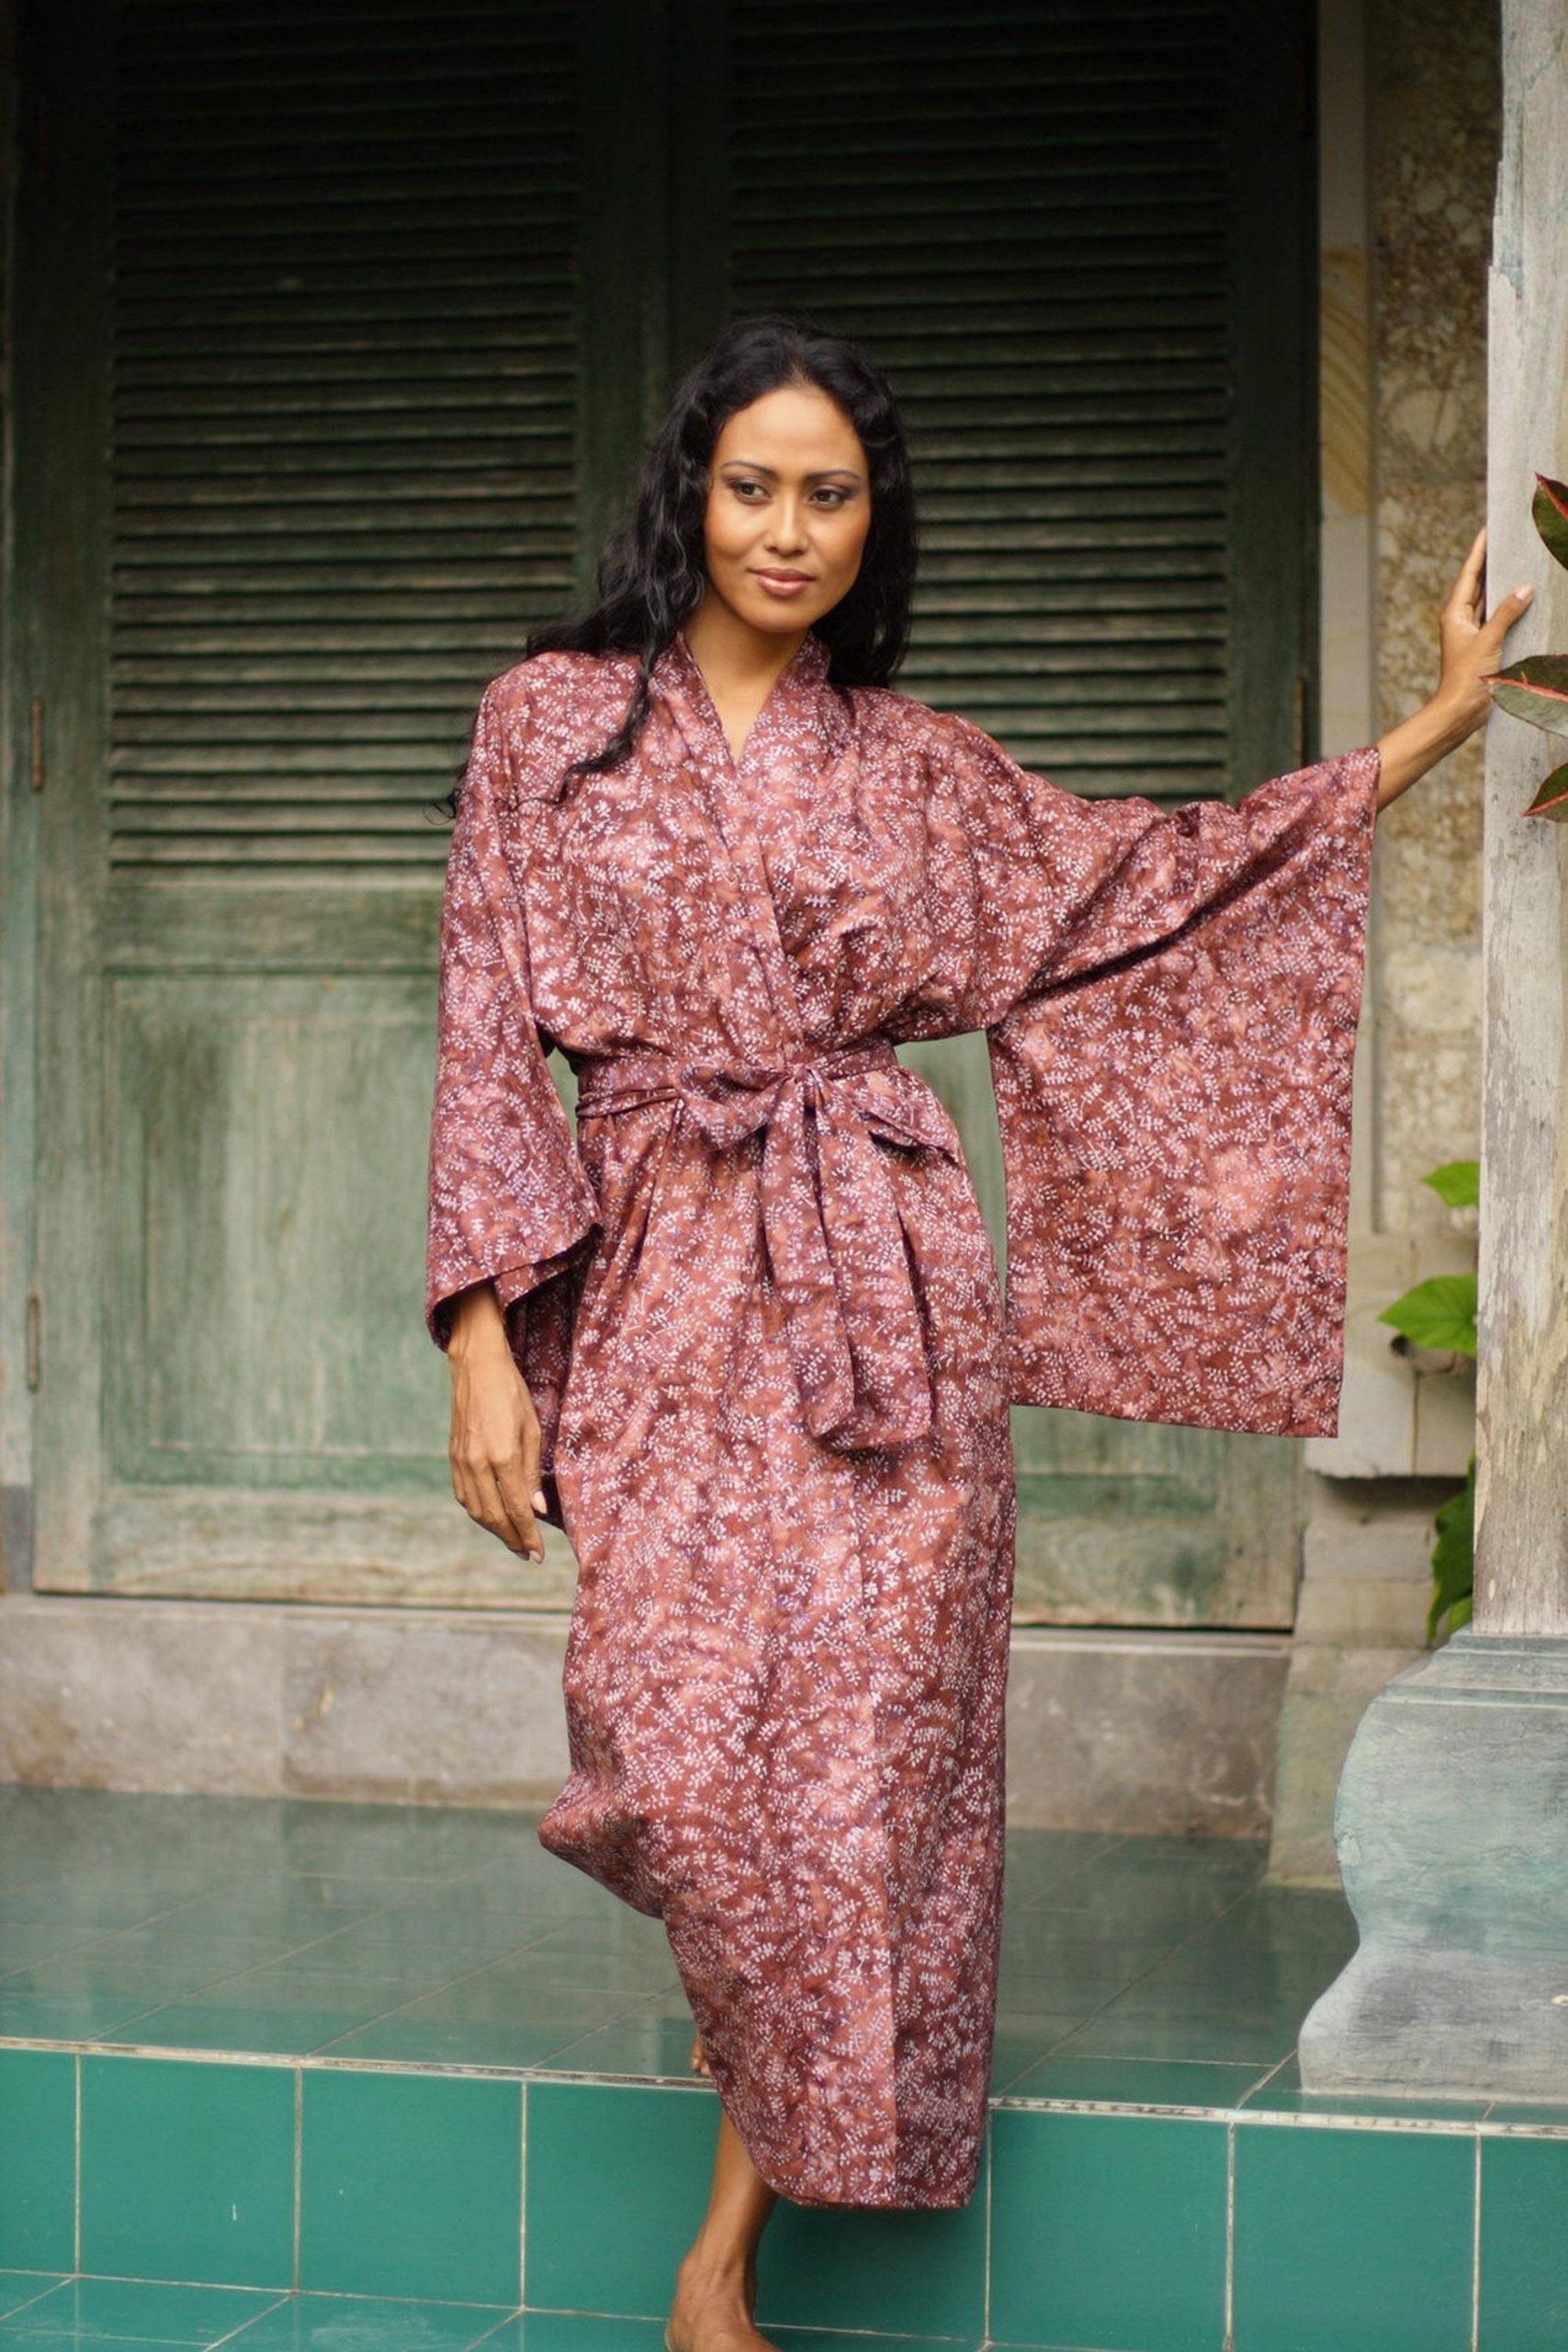 """Handmade 100% Cotton Robe in Red Pink Tones from Indonesia, """"Earth Dancer"""" Handmade robes"""